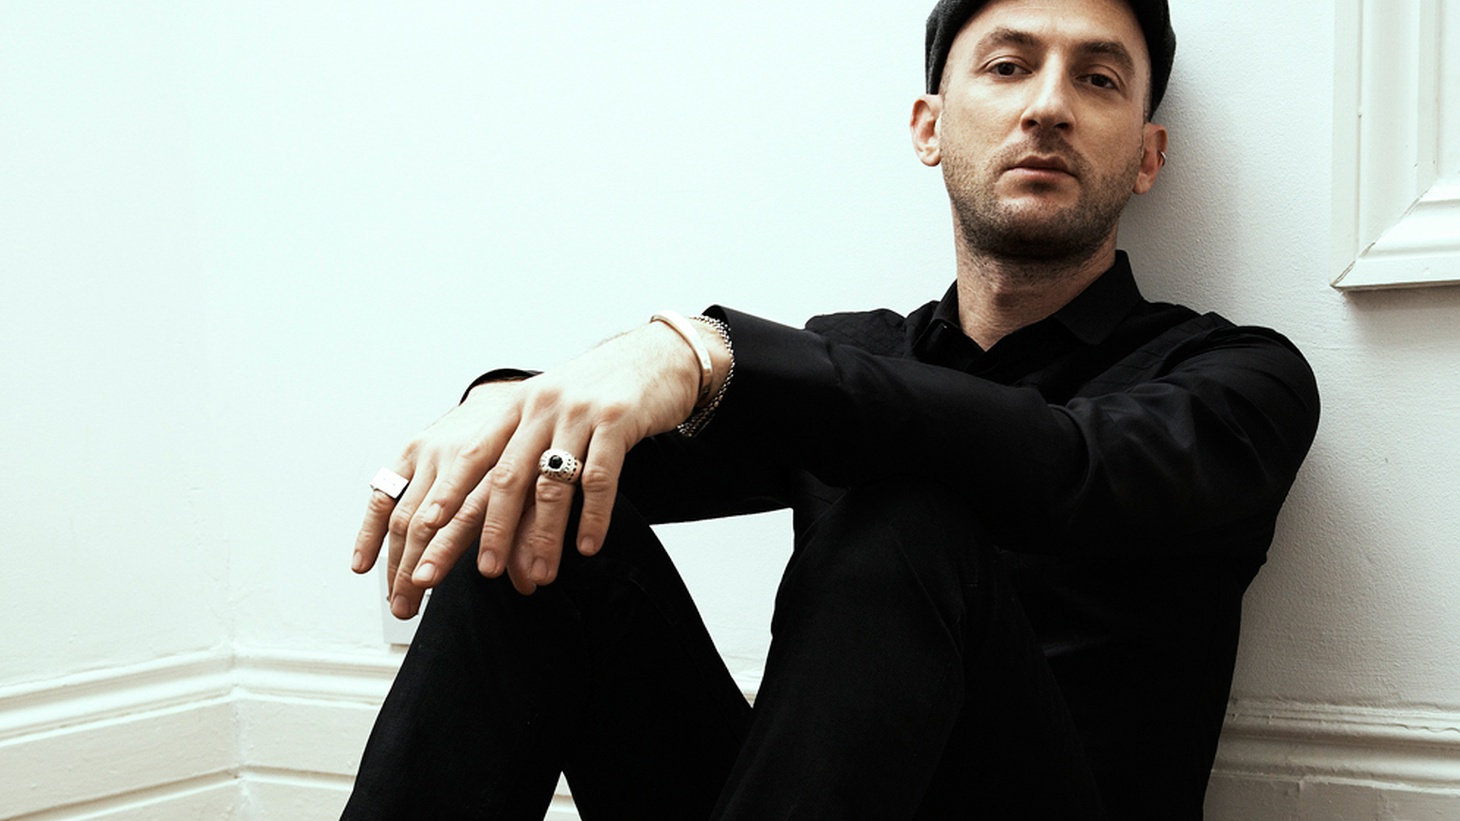 Underground champion Damian Lazarus stops by Metropolis to talk about his latest release and his upcoming show in L.A. Plus, Jason will premiere an exclusive Andy Cato mix as part of an upcoming Groove Armada EP.